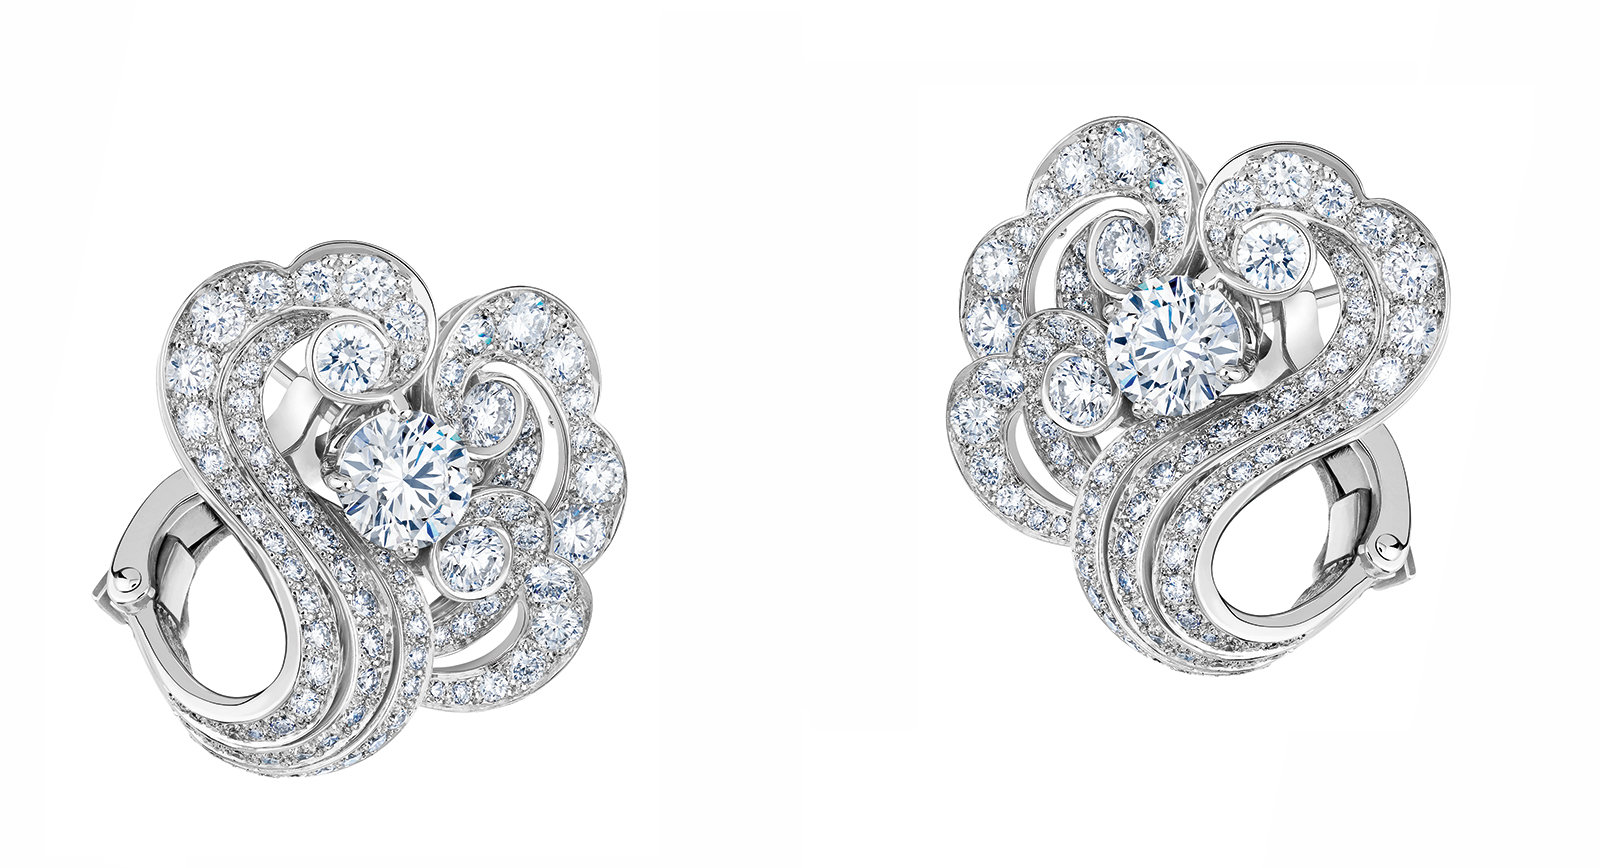 The Sirocco Earrungs From De Beers